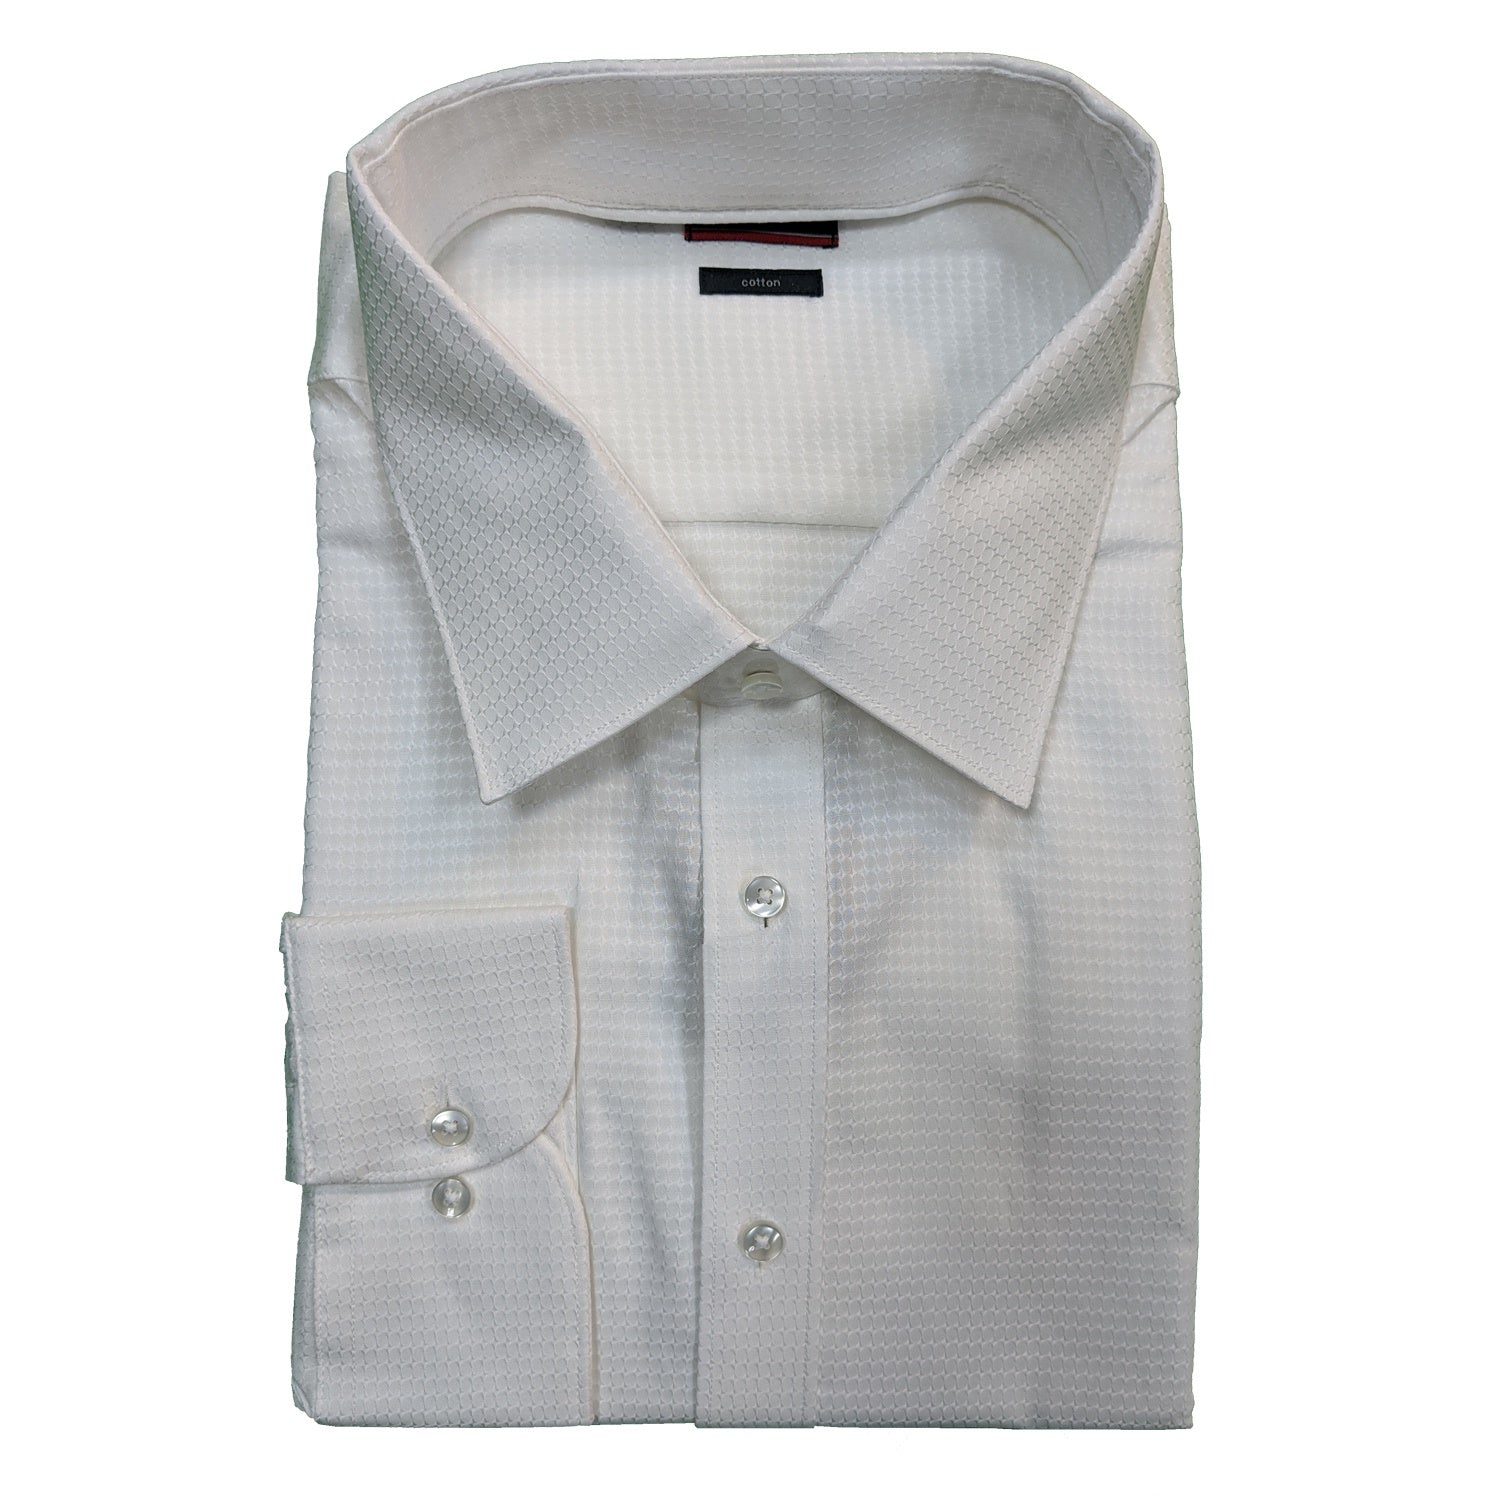 Pierre Cardin L/S Shirt - 45108600 - White 1